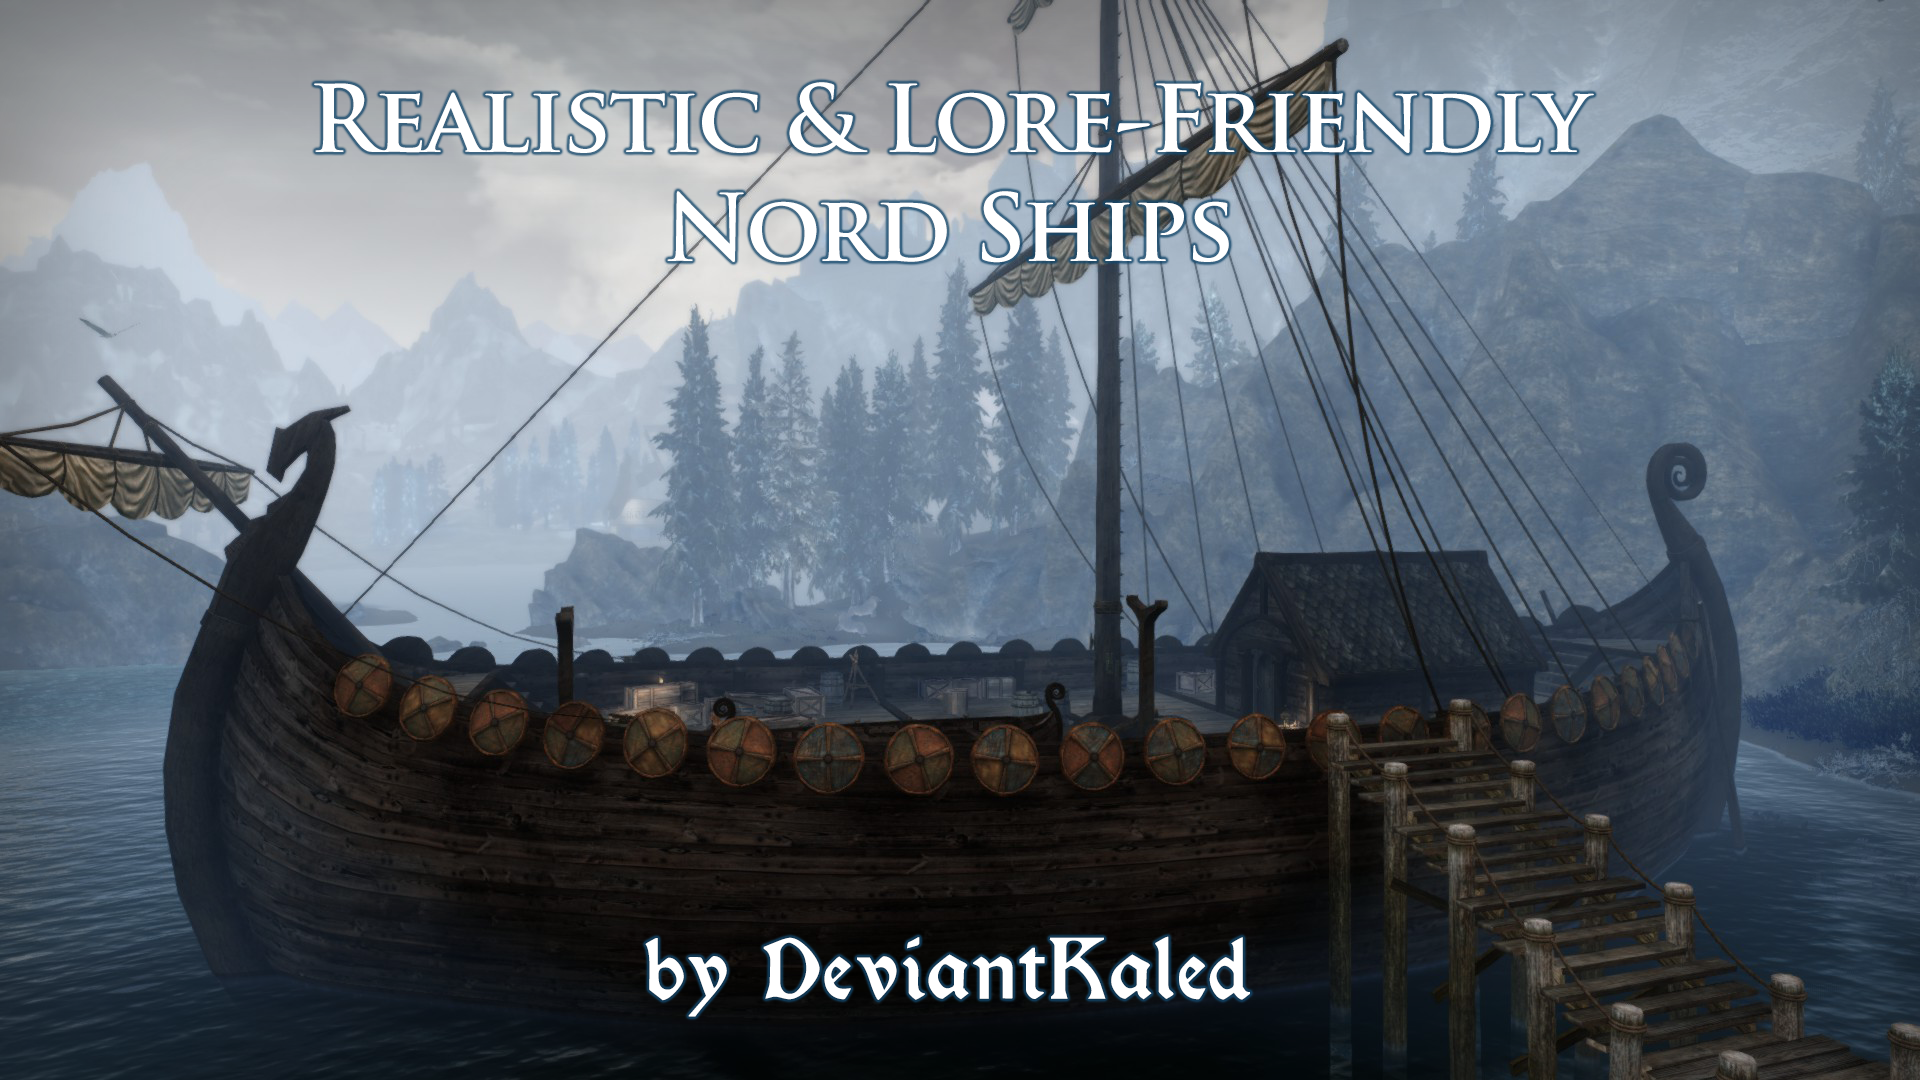 DK's Realistic and Lore-Friendly Nord Ships